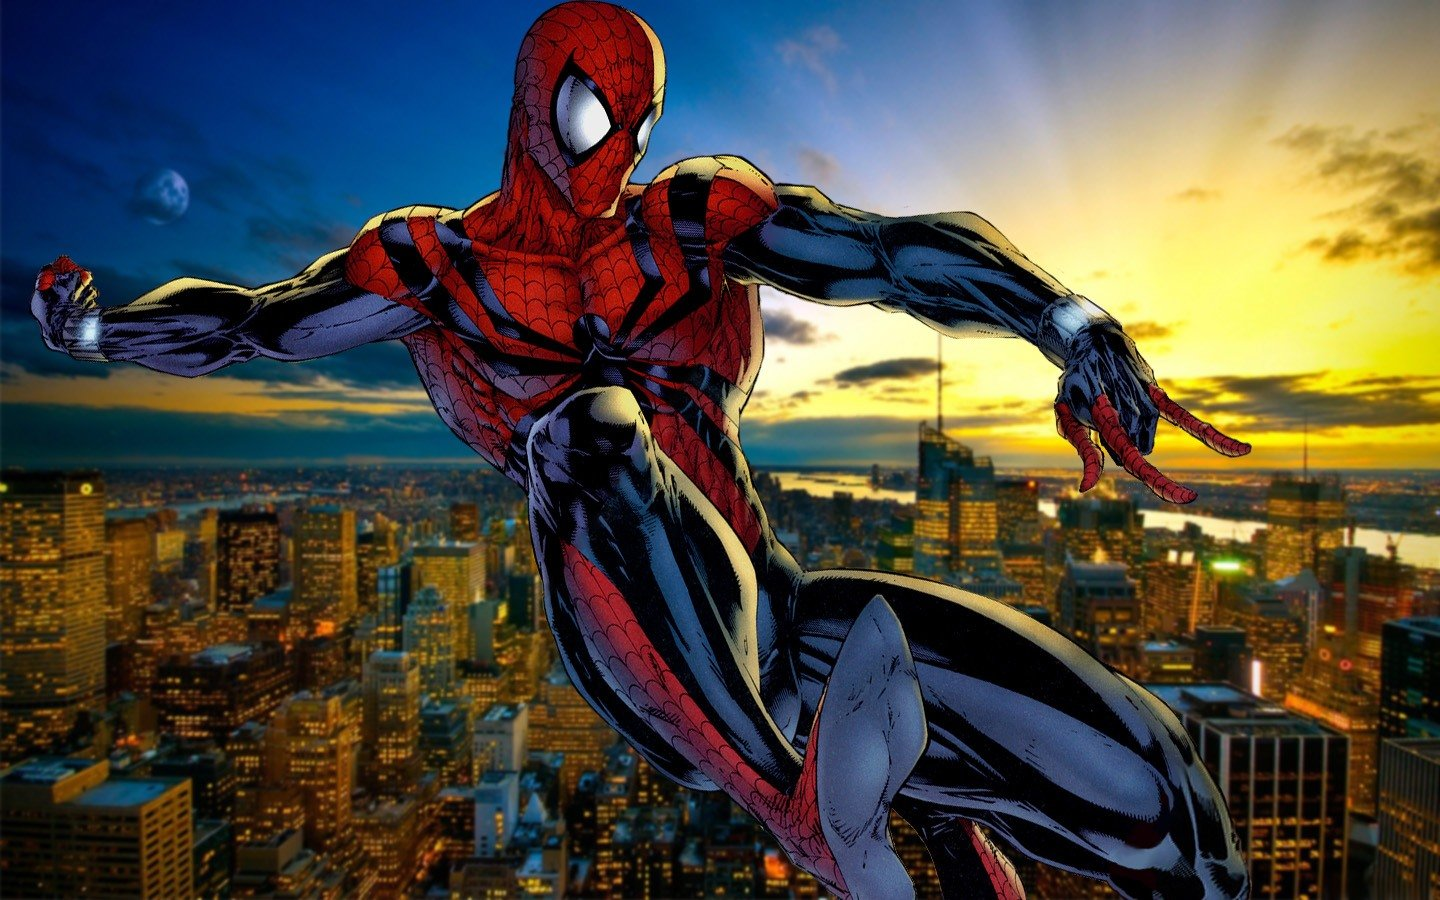 Ben Reilly Spider-Man: Now we're at the part of the list where we see some cool Spidey-suits not worn by Peter Parker himself. This one was worn by Peter's clone named Ben Reilly, who operated as Spider-Man before donning the next costume on this list...